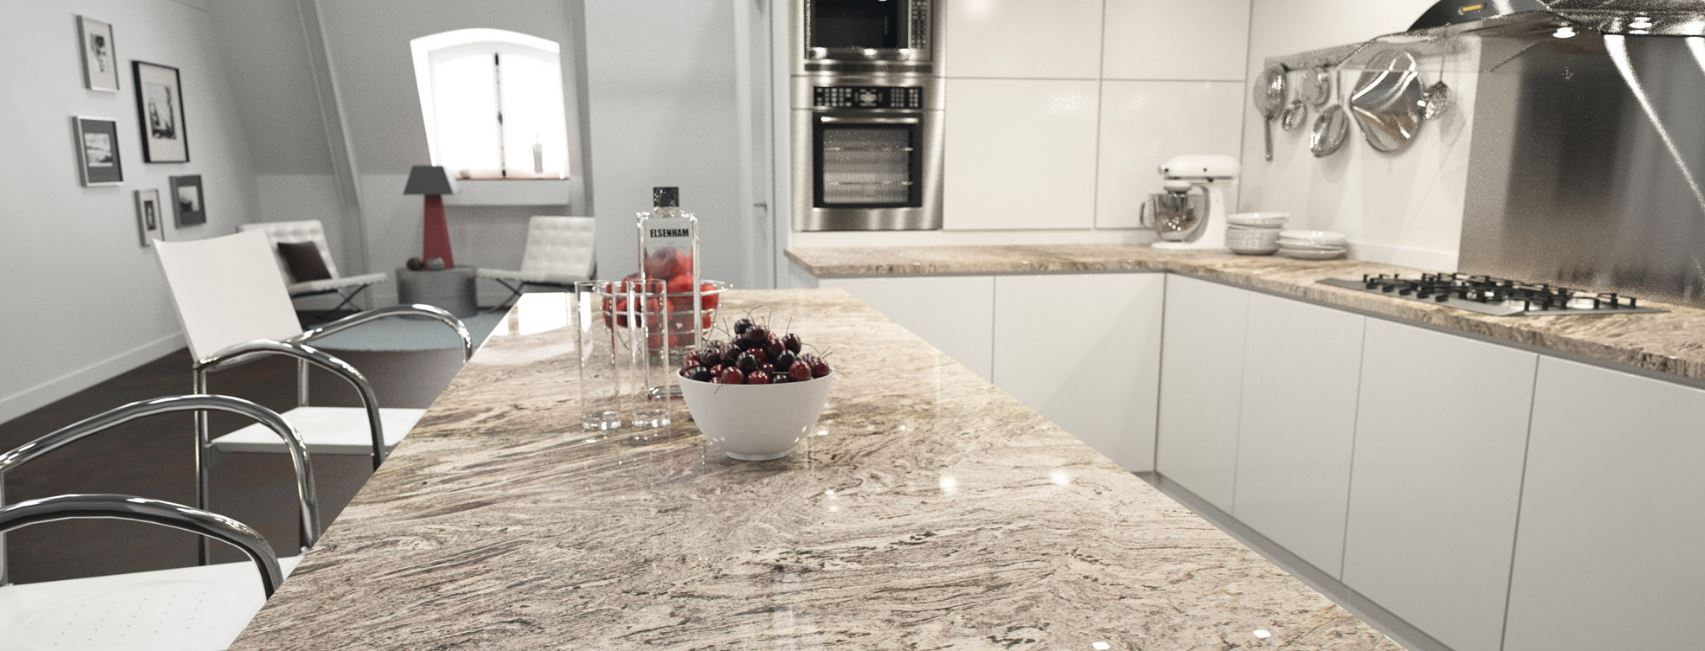 Granite countertop colors, example Waterfall by Sensa Granite Countertops, available at Lumberjack's Kitchens and Baths.